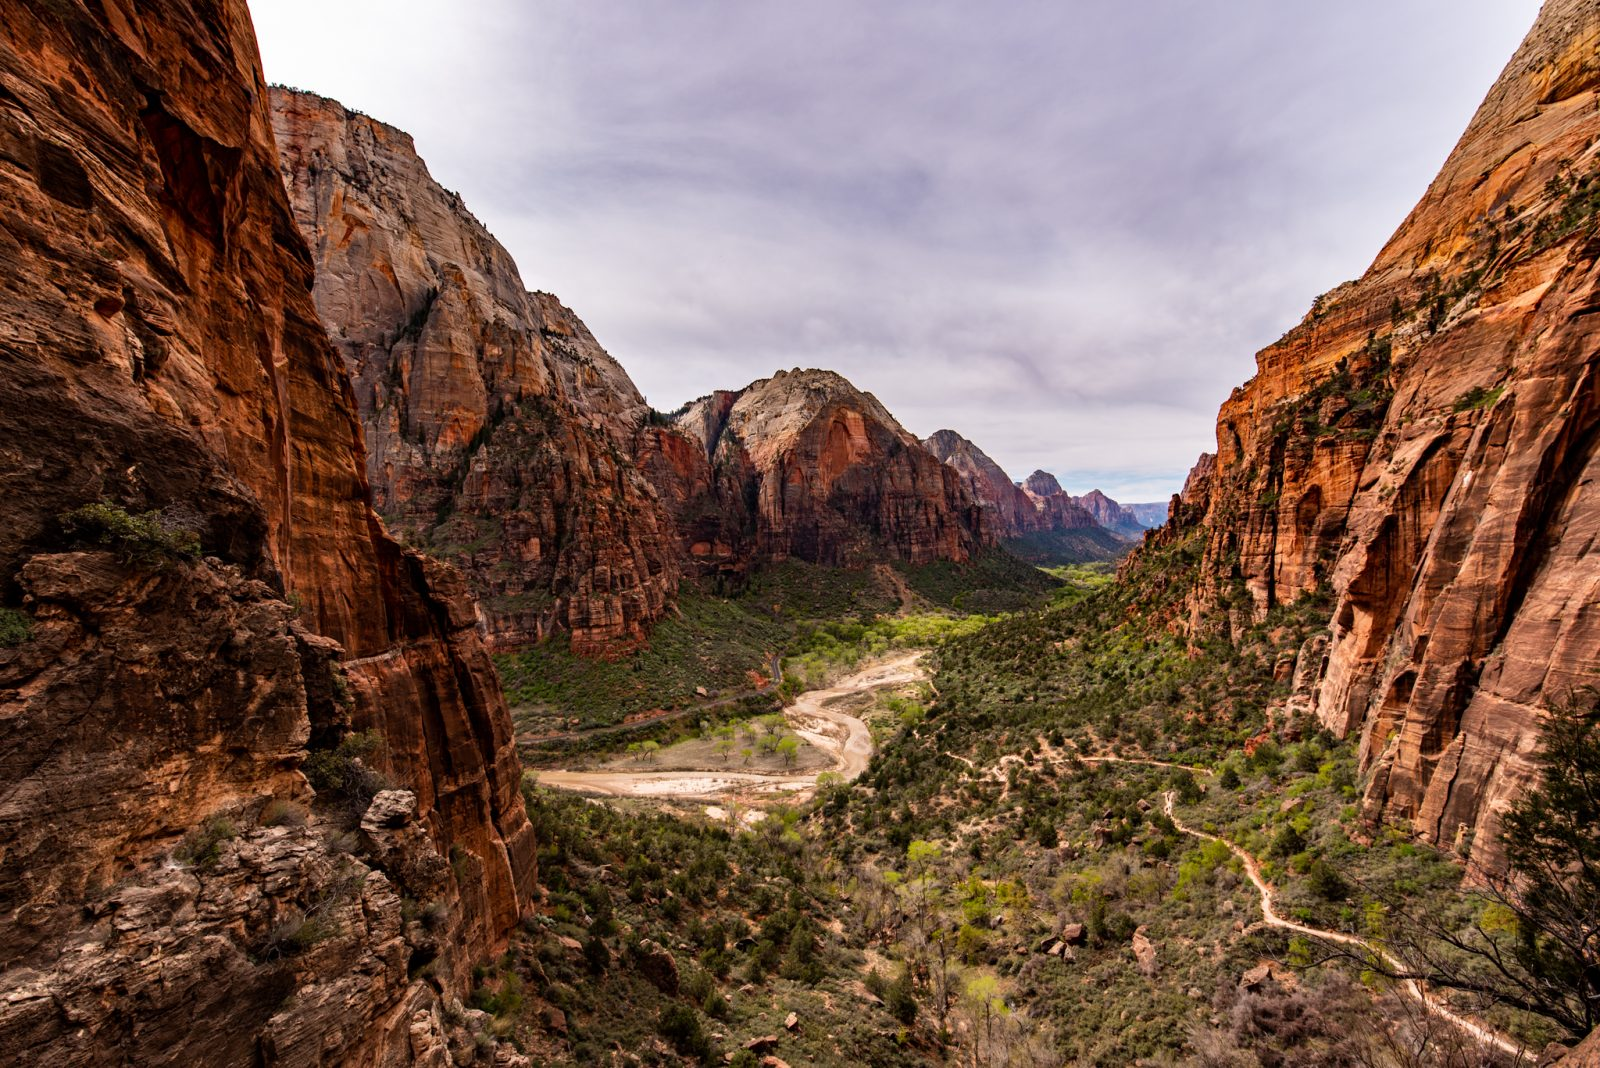 Trails of Zion